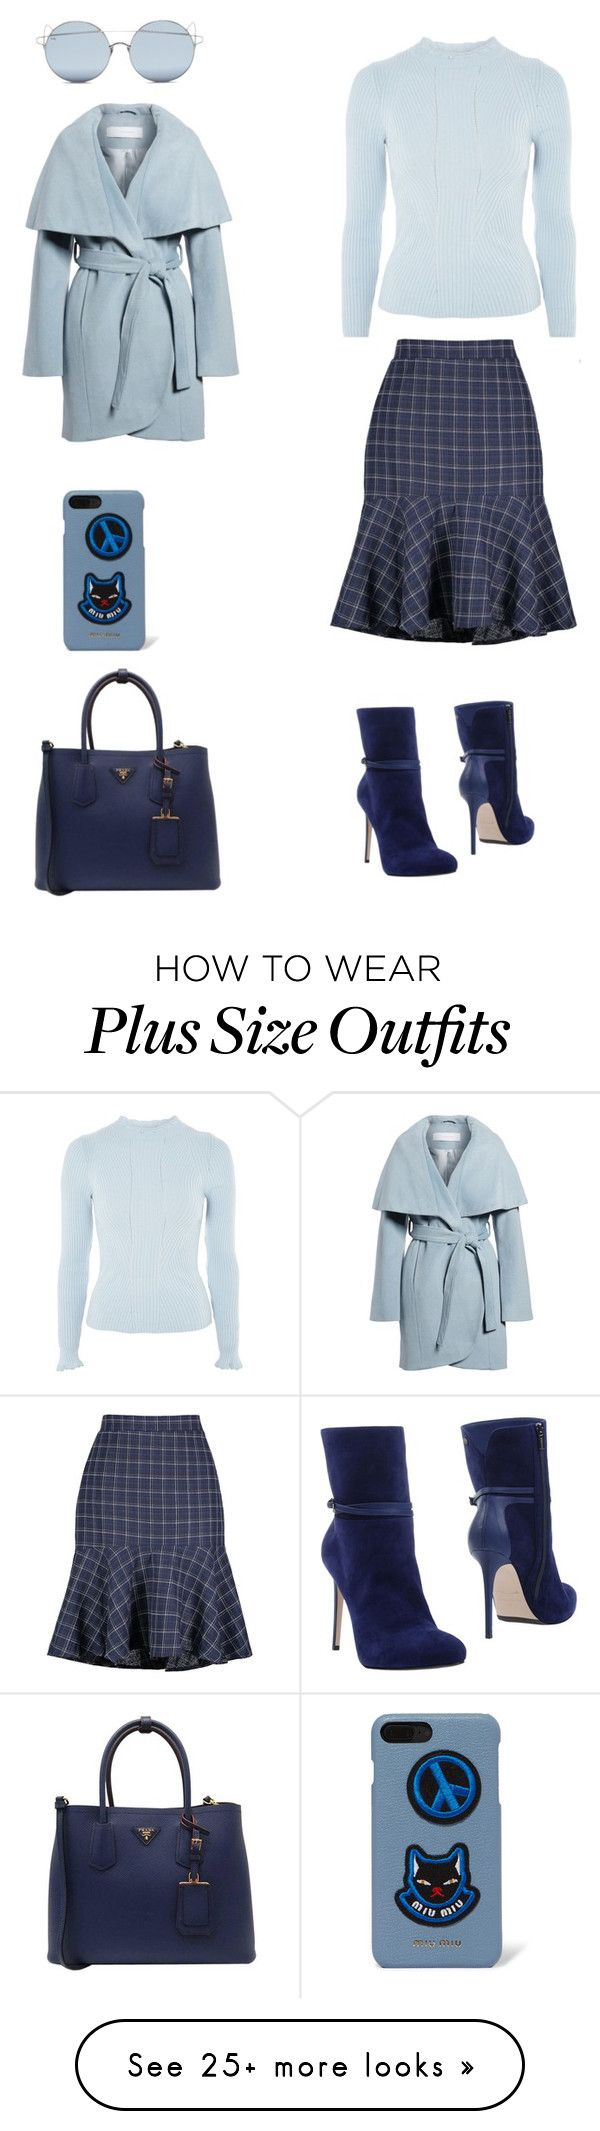 """Başlıksız #1501"" by cevyilmaz on Polyvore featuring Topshop, Le Silla, Prada, Miu Miu, Tahari and For Art's Sake"